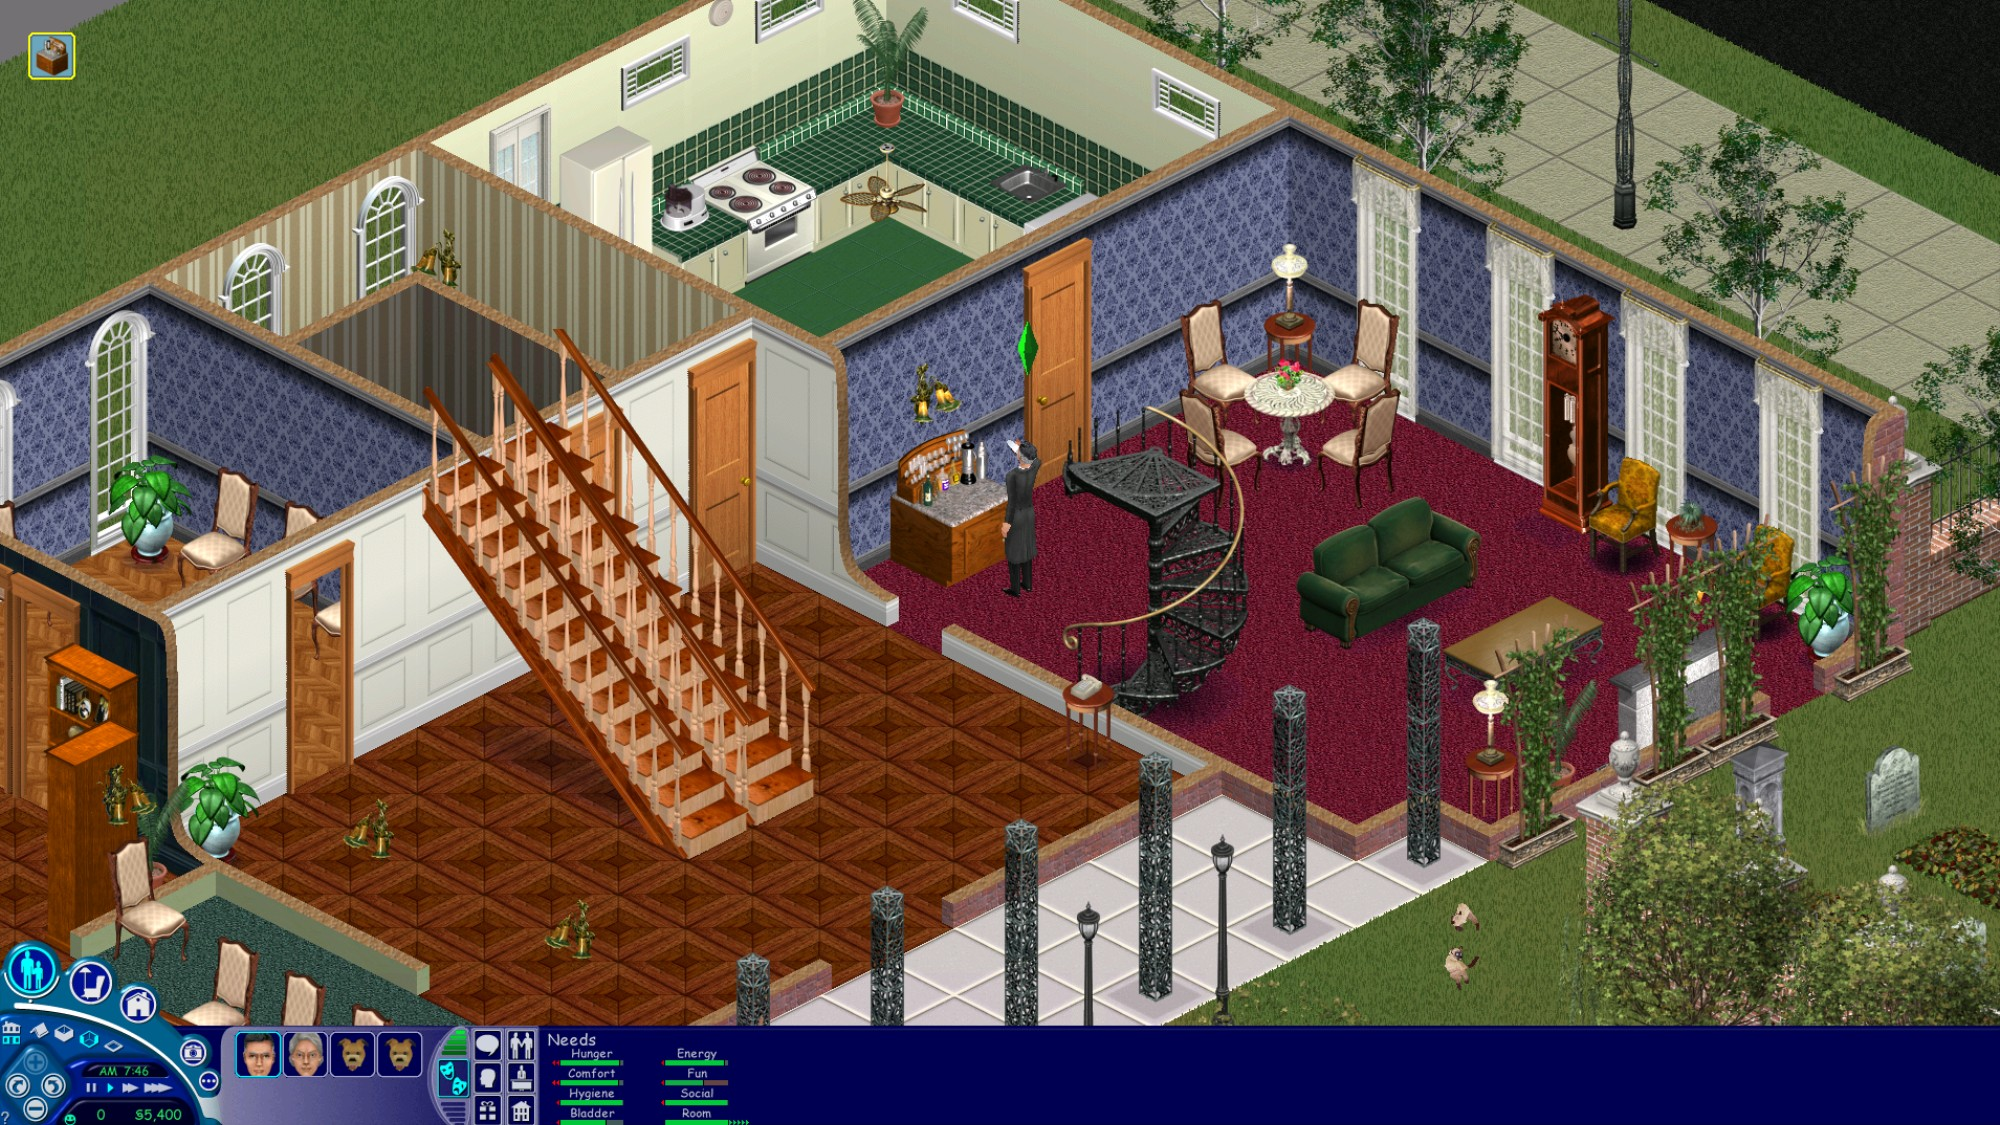 The Original Blueprints for 'The Sims' Reveal Why the Game